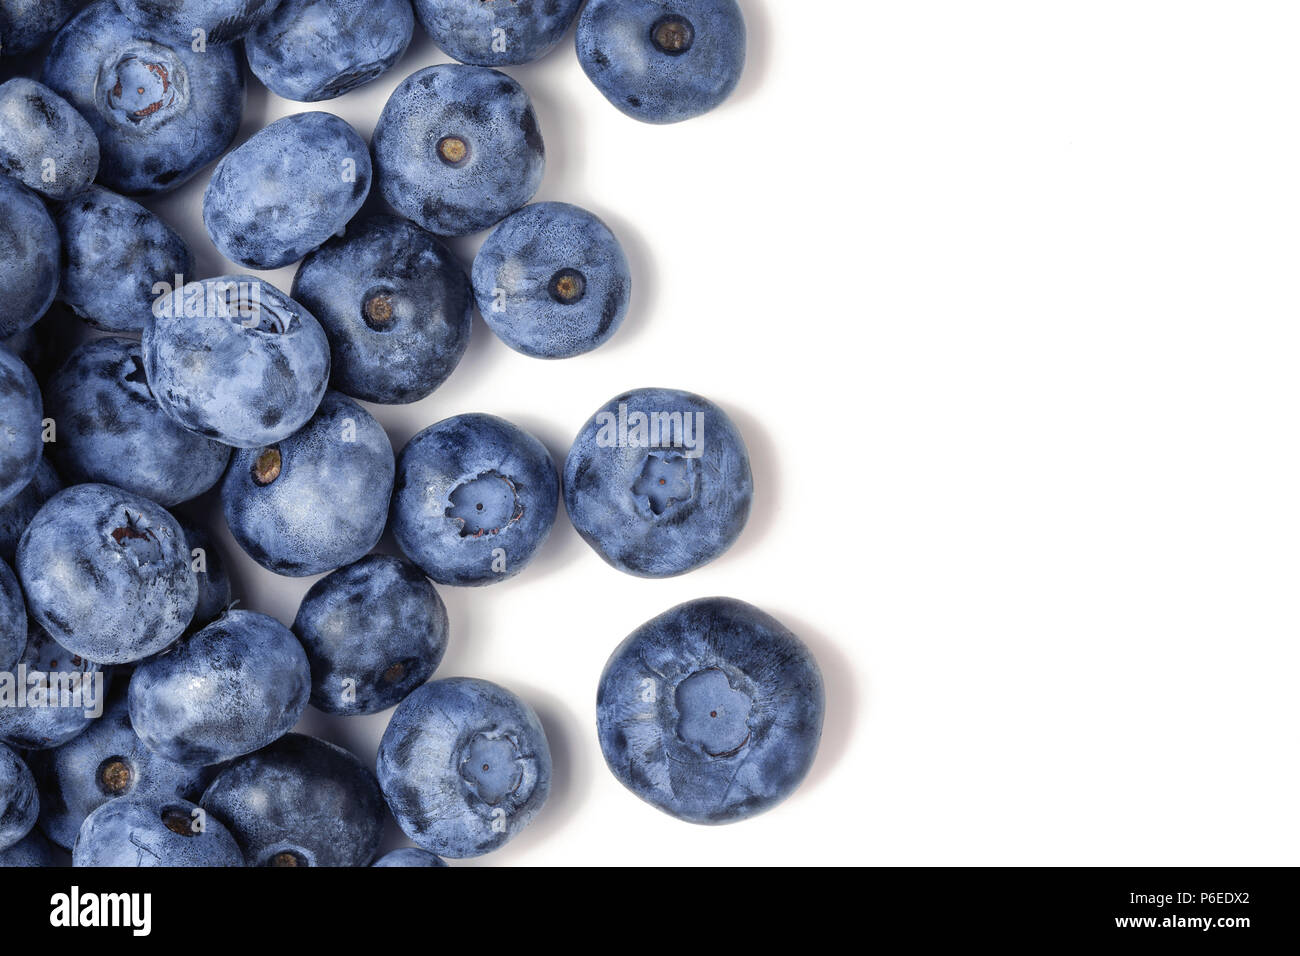 Top view of fresh ripe blueberries isolated on white. Close-up organic juicy freshly picked bilberries. Copyspace. Flat lay - Stock Image